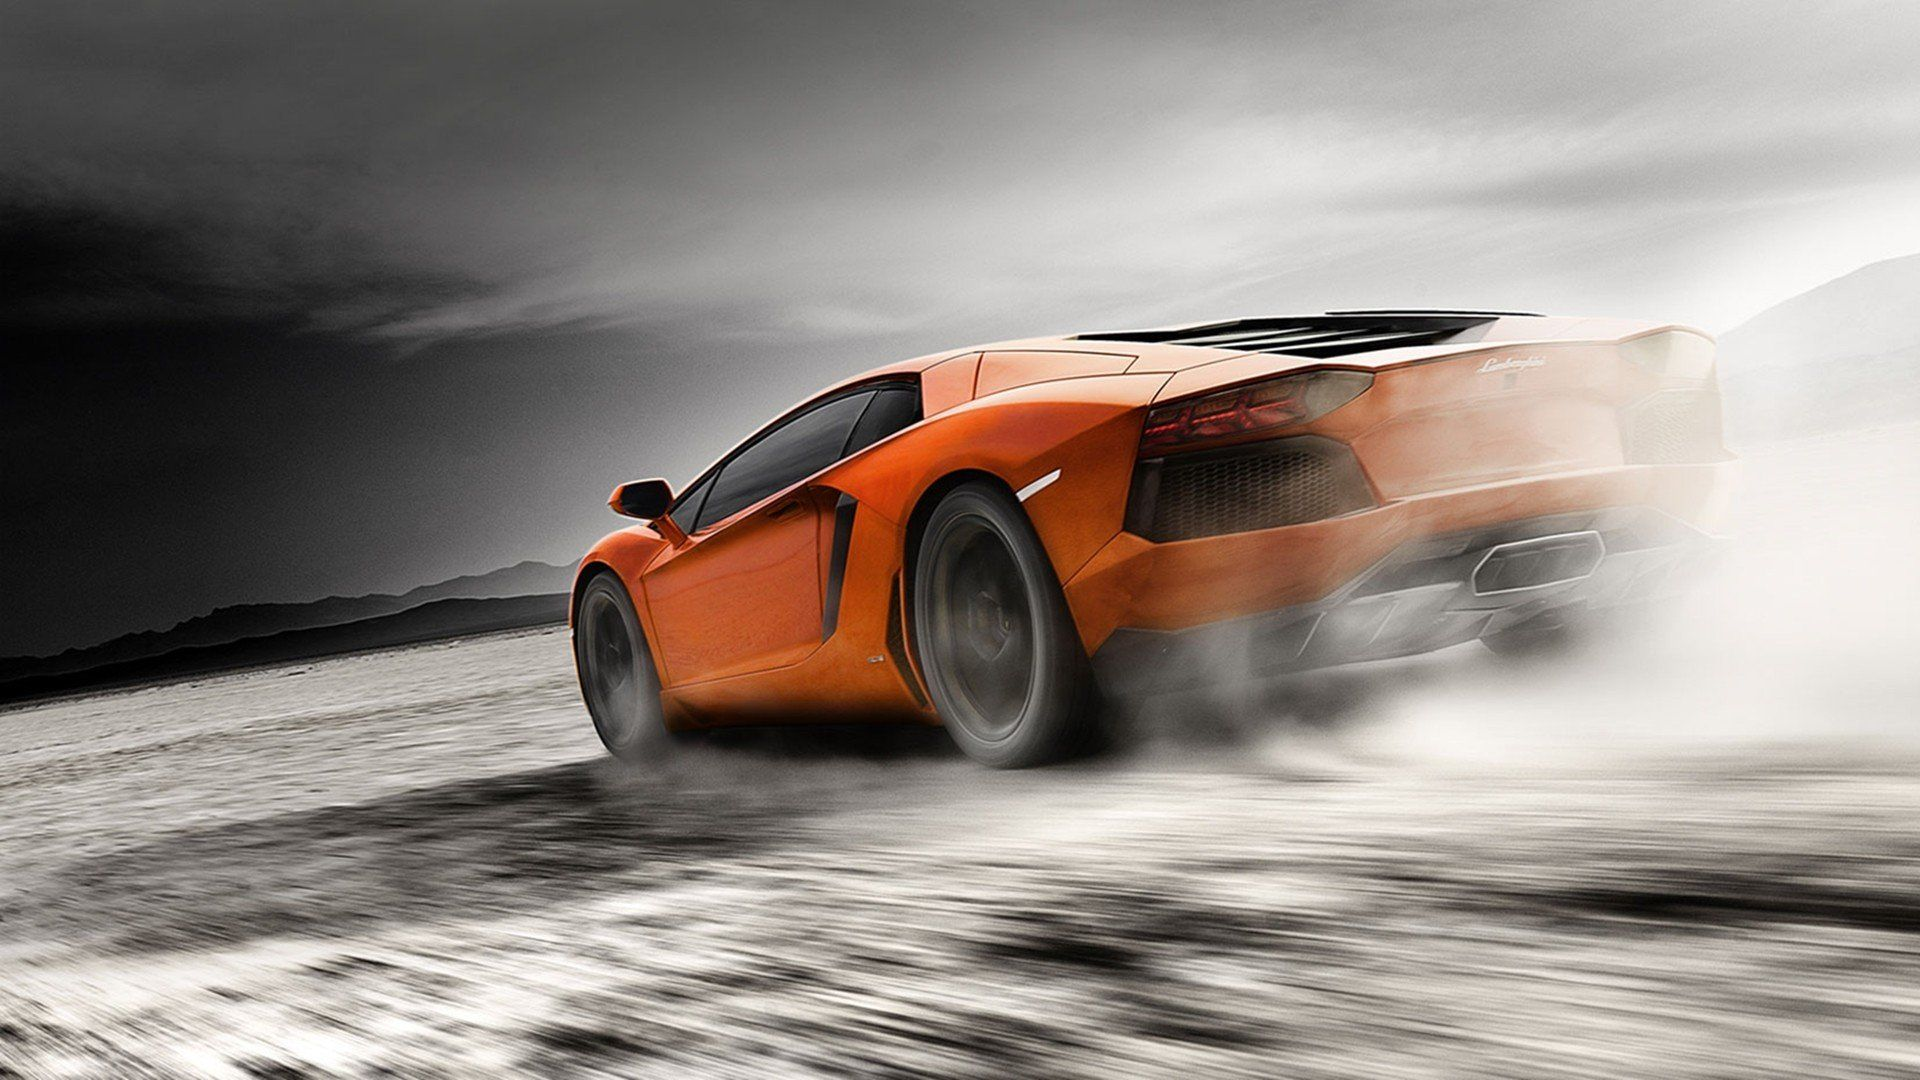 Lamborghini Aventador Next Generation Desktop Background HD